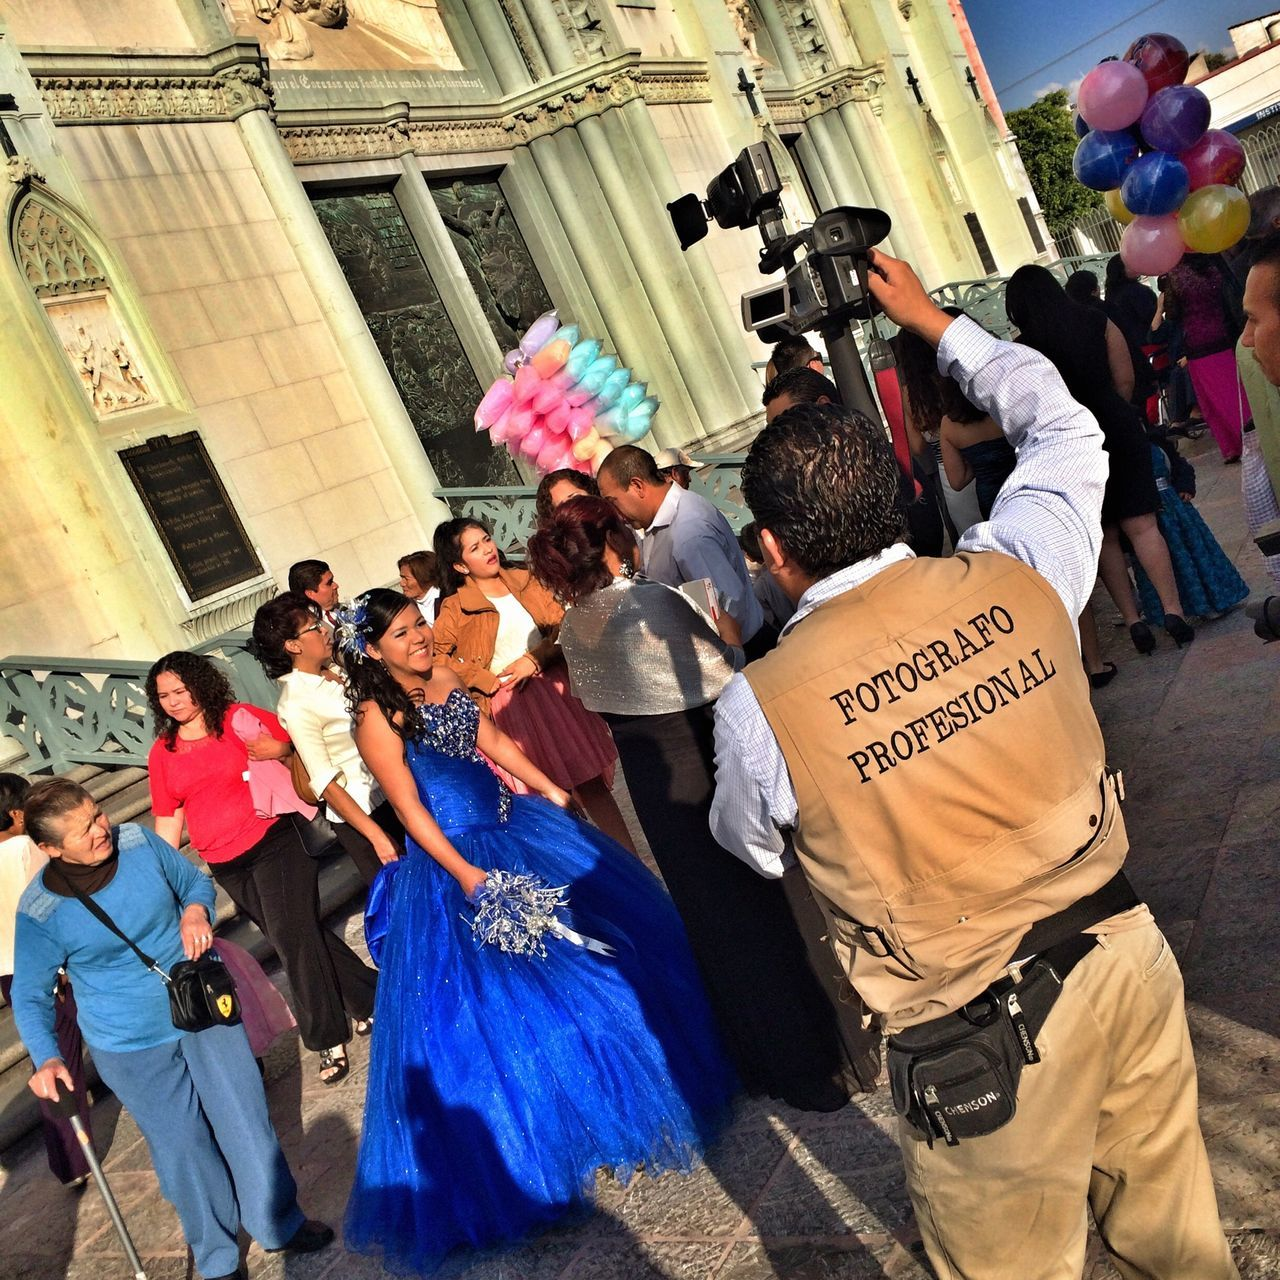 Streetphotograhy Eye4photography  Quinciañera Photojournalism Onassignment Latin America Guanajuato, México IPhoneography Mexico Urban Photography A man taking video of a #quinceañera wearing a vest that says Professional #Photographer. / Un hombre tomando video de la celebracion de quinciañera usando un chaleco que dice #Fotografo Profesional. #OnAssignment #Leon #Guanajuato #Mexico #EverydayMexico #LatinAmerica #EverydayLatinAmerica #iphoneography #Eye4photography #photojournalism #streetphotography #NorthAmerica #JuanCarlos #2015copyright My Best Photo 2015 The Street Photographer The Street Photographer - 2017 EyeEm Awards